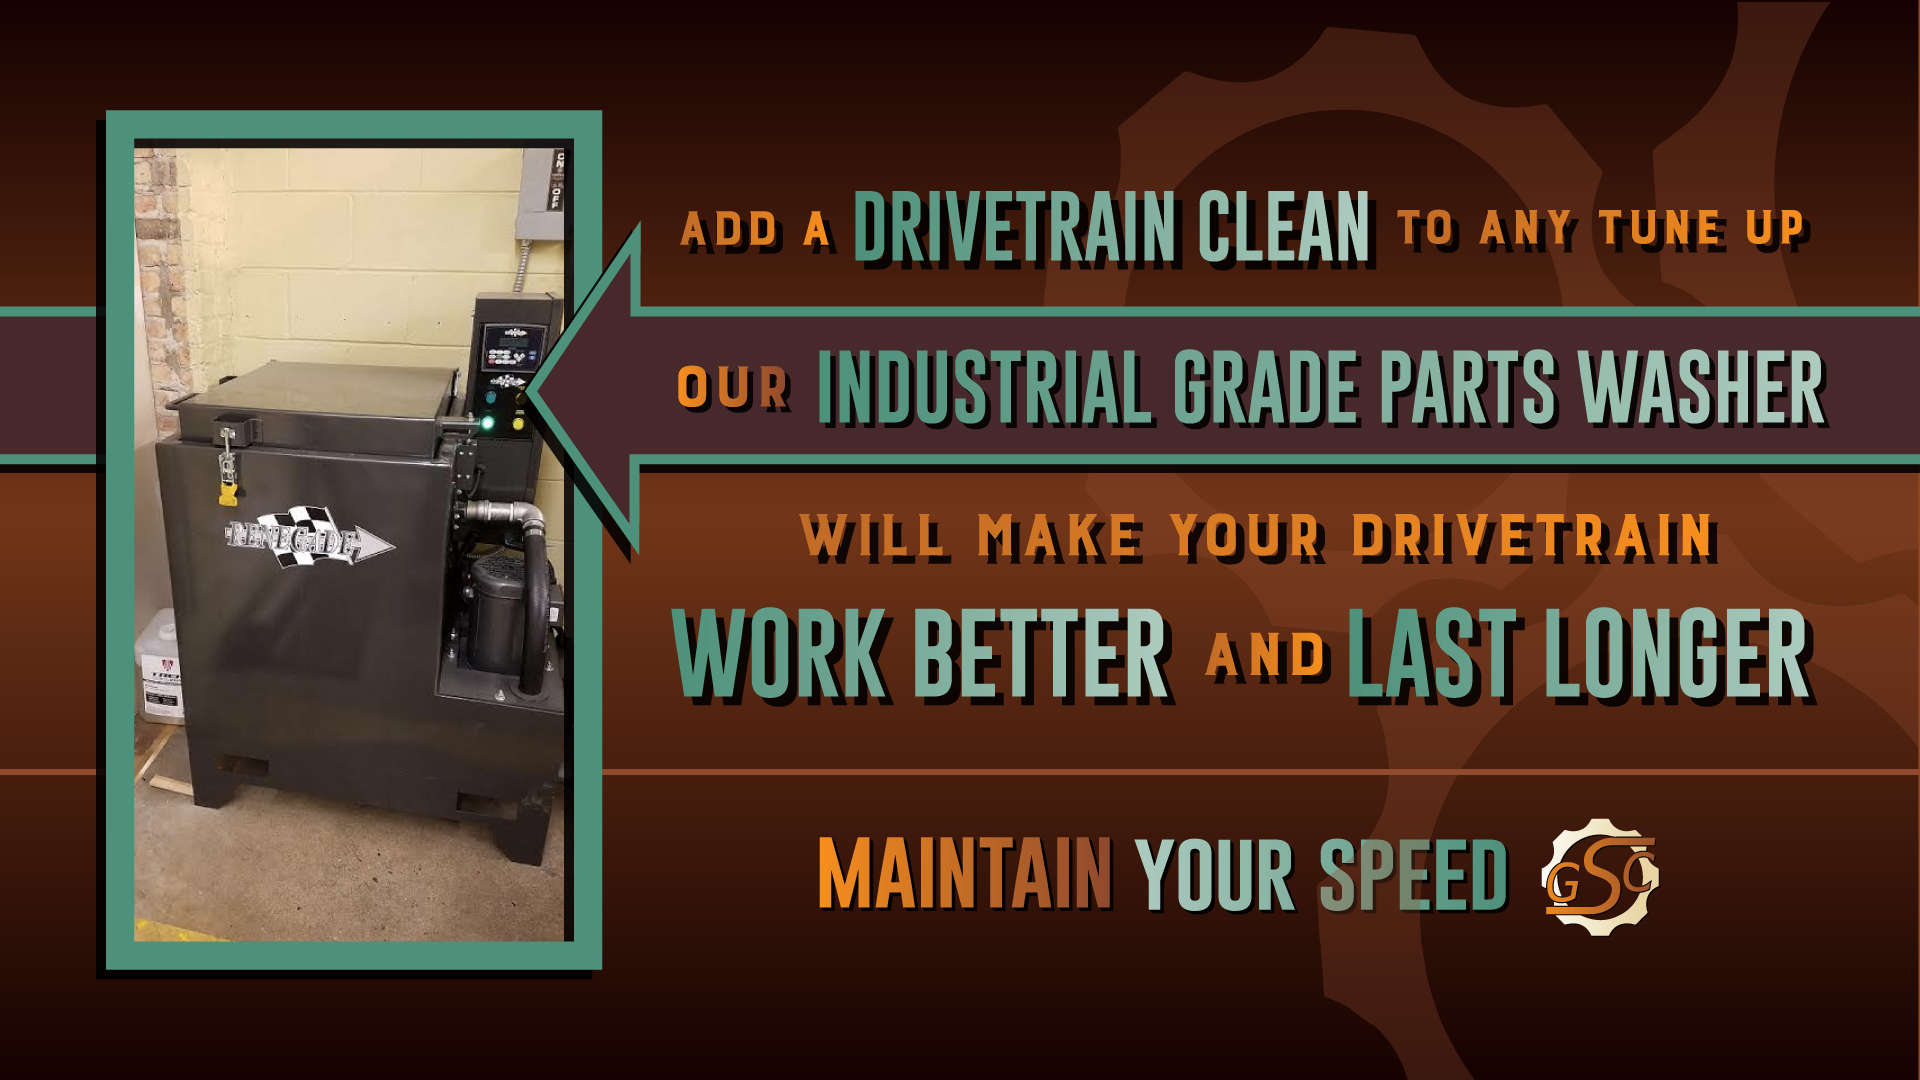 Add a drivetrain clean to any tune up.